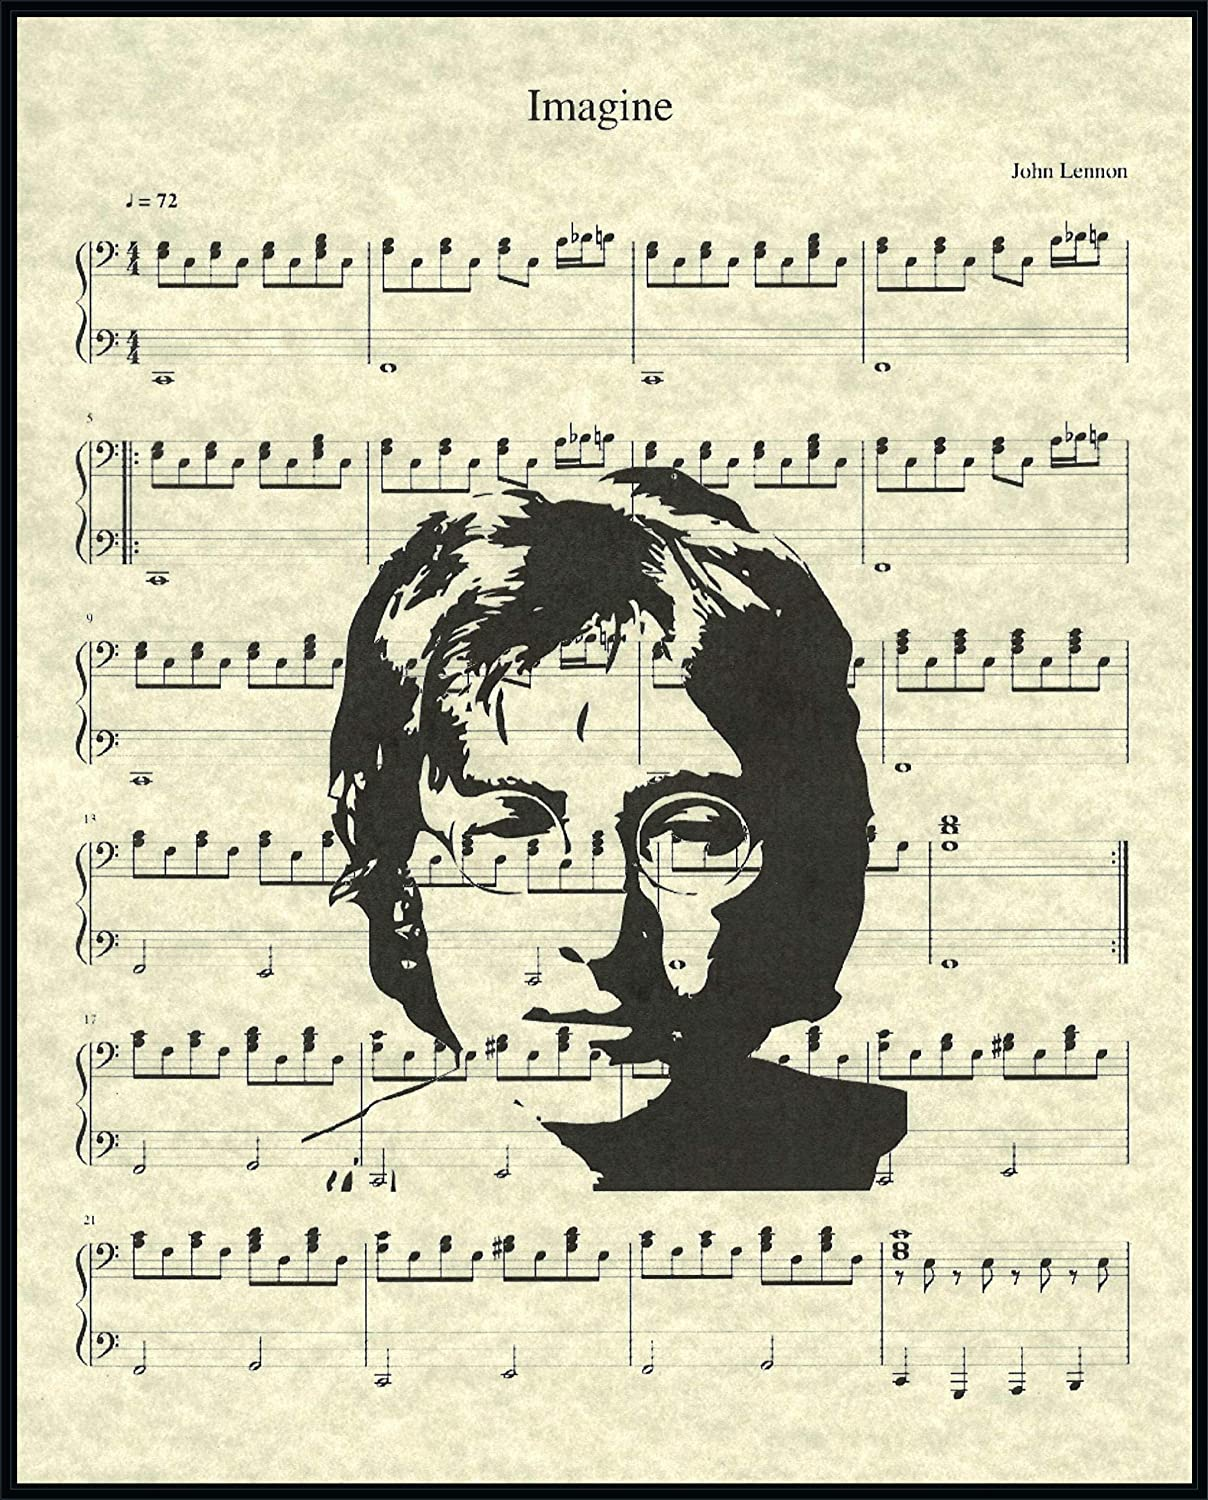 Amazon Com Imagine By John Lennon Music Sheet Artwork Print Picture Poster Home Office Bedroom Nursery Kitchen Wall Decor Unframed Posters Prints